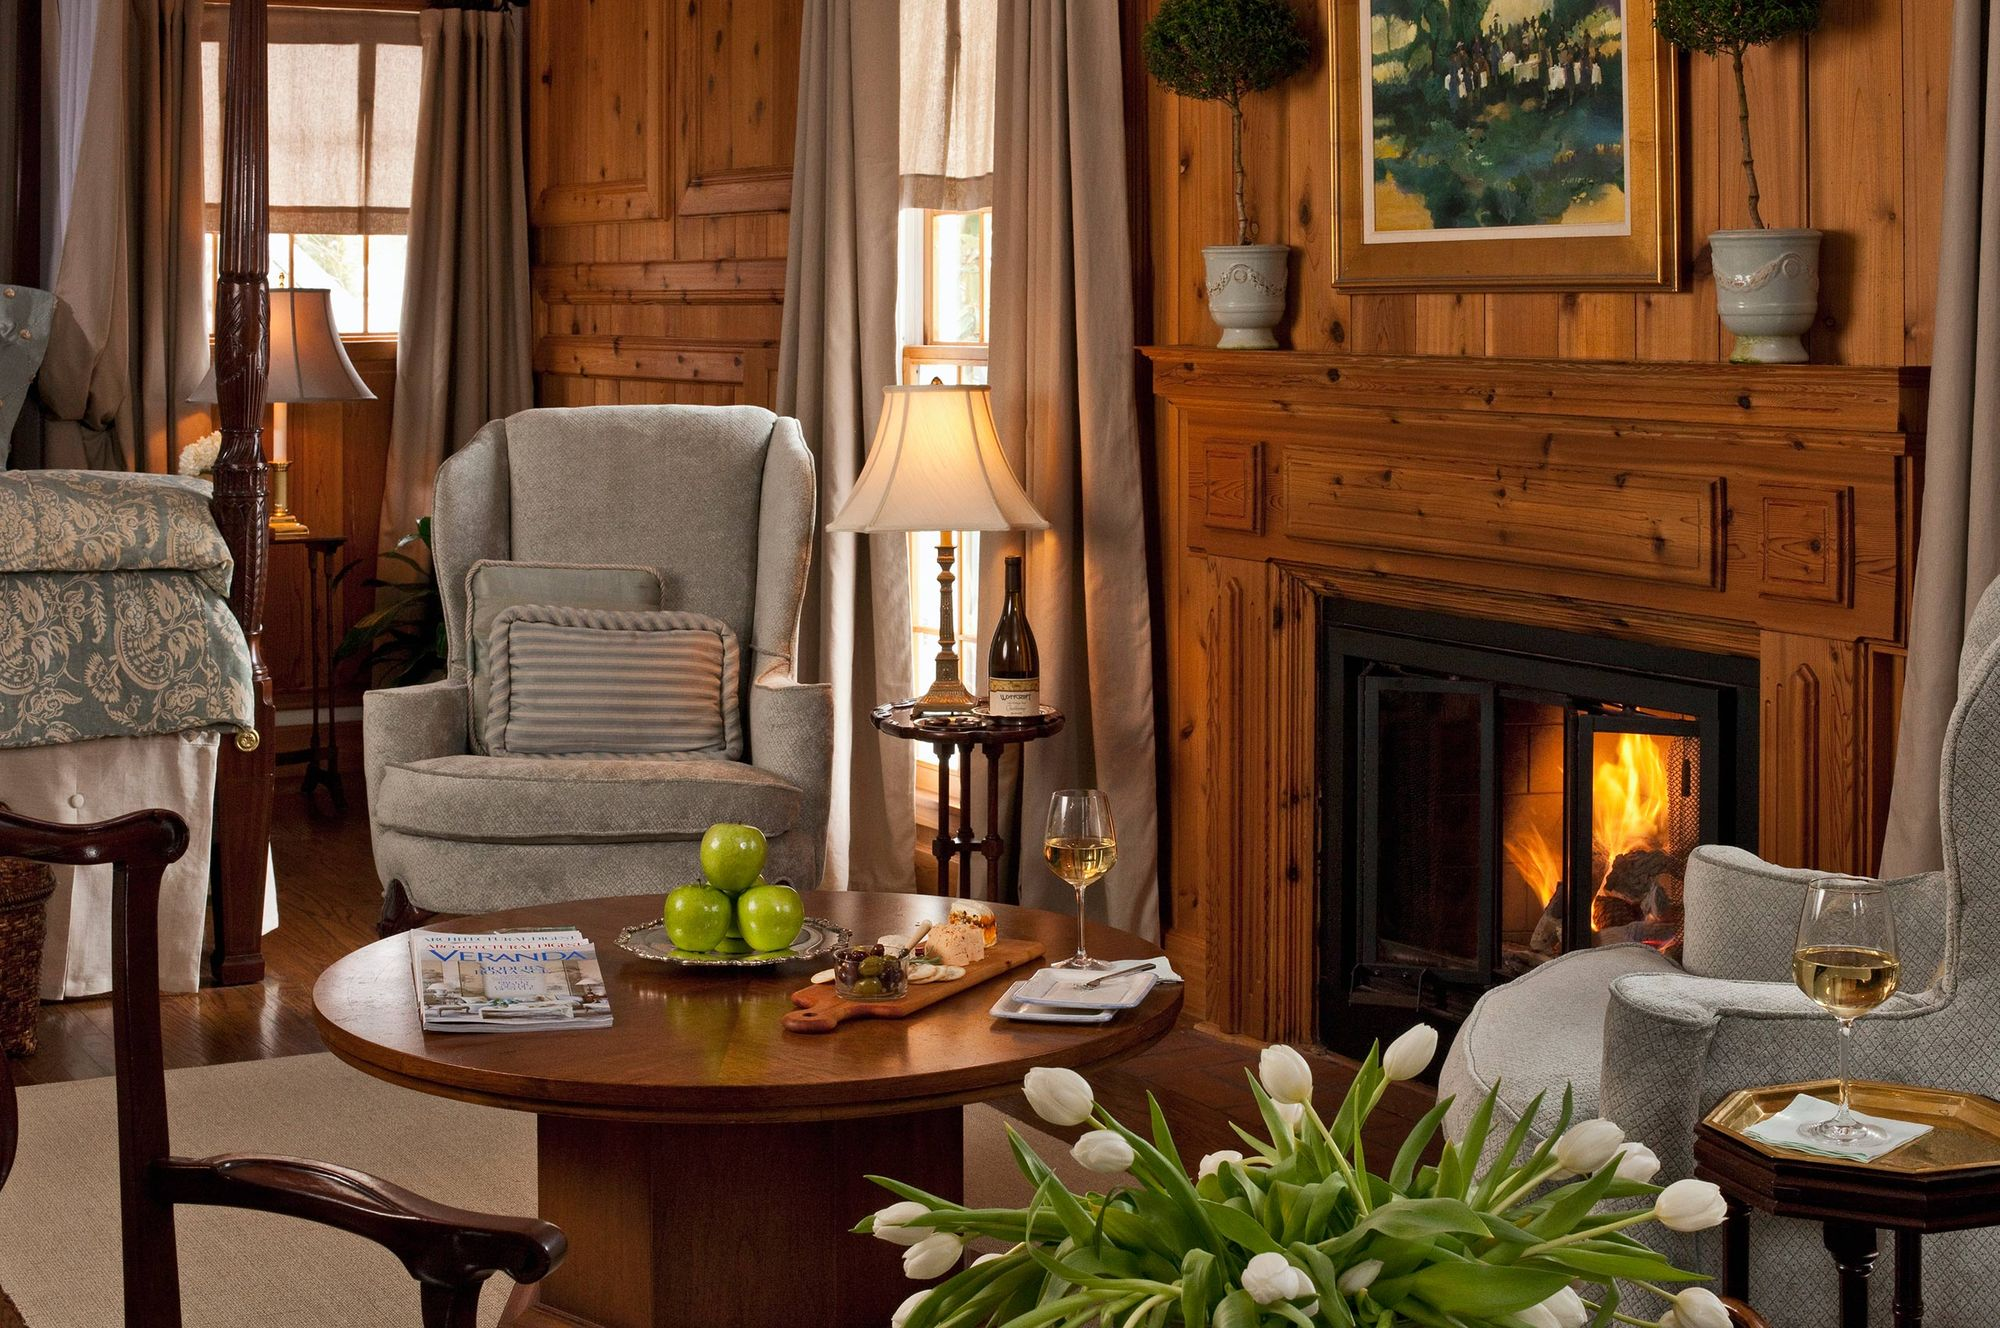 Sitting area with fireplace - Interior photograph.jpg